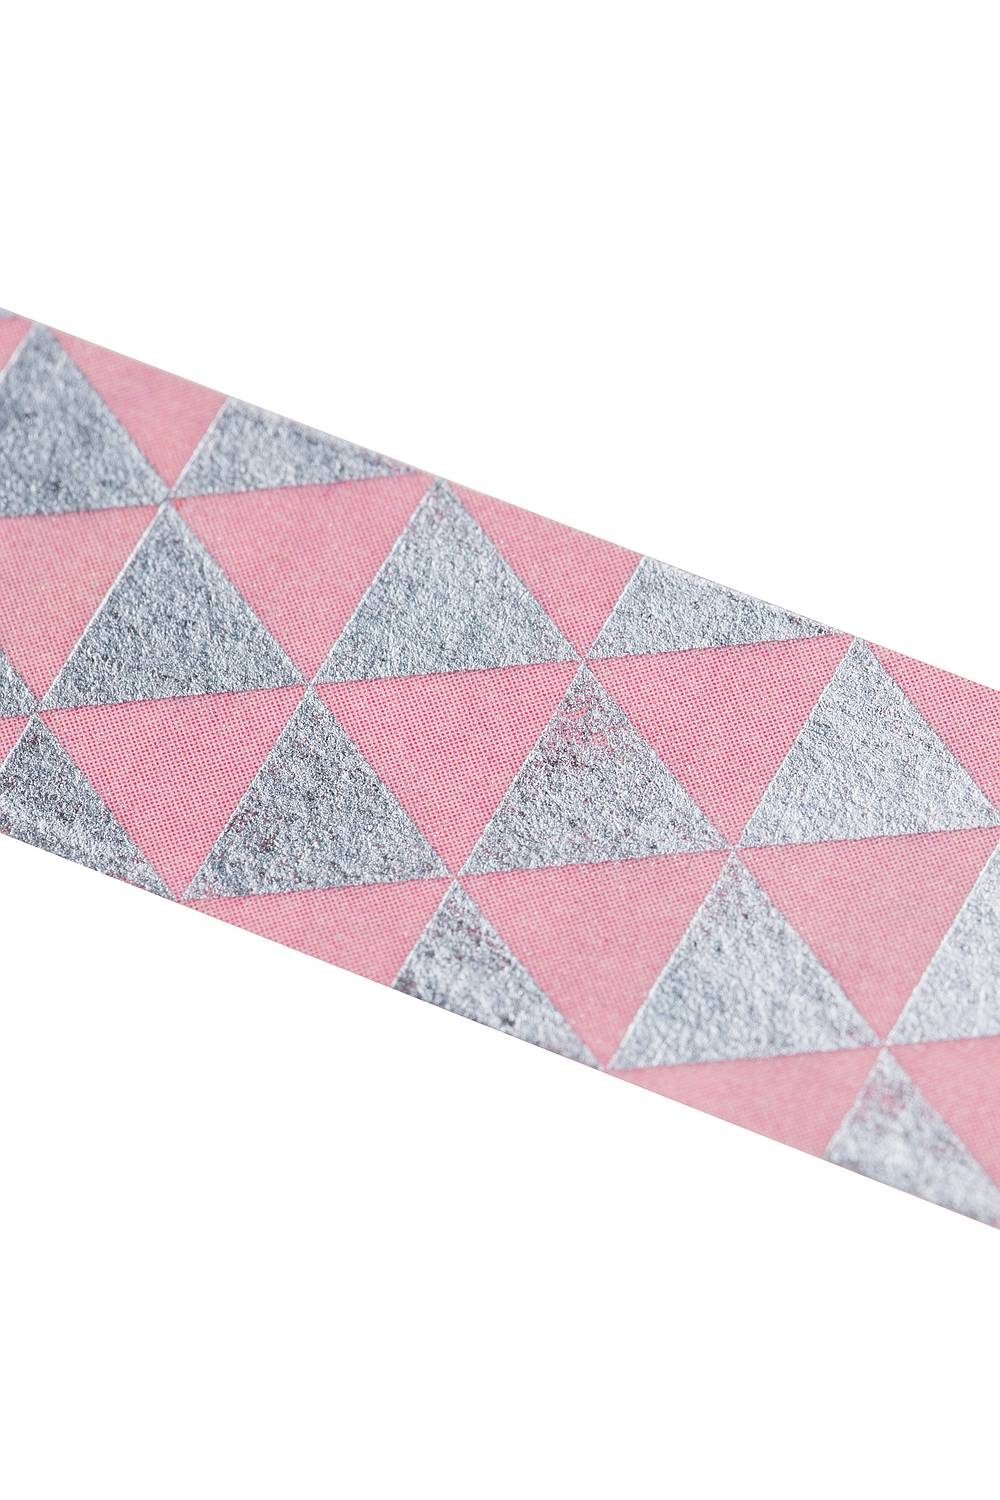 Washi Tape SILVER TRIANGLE rose